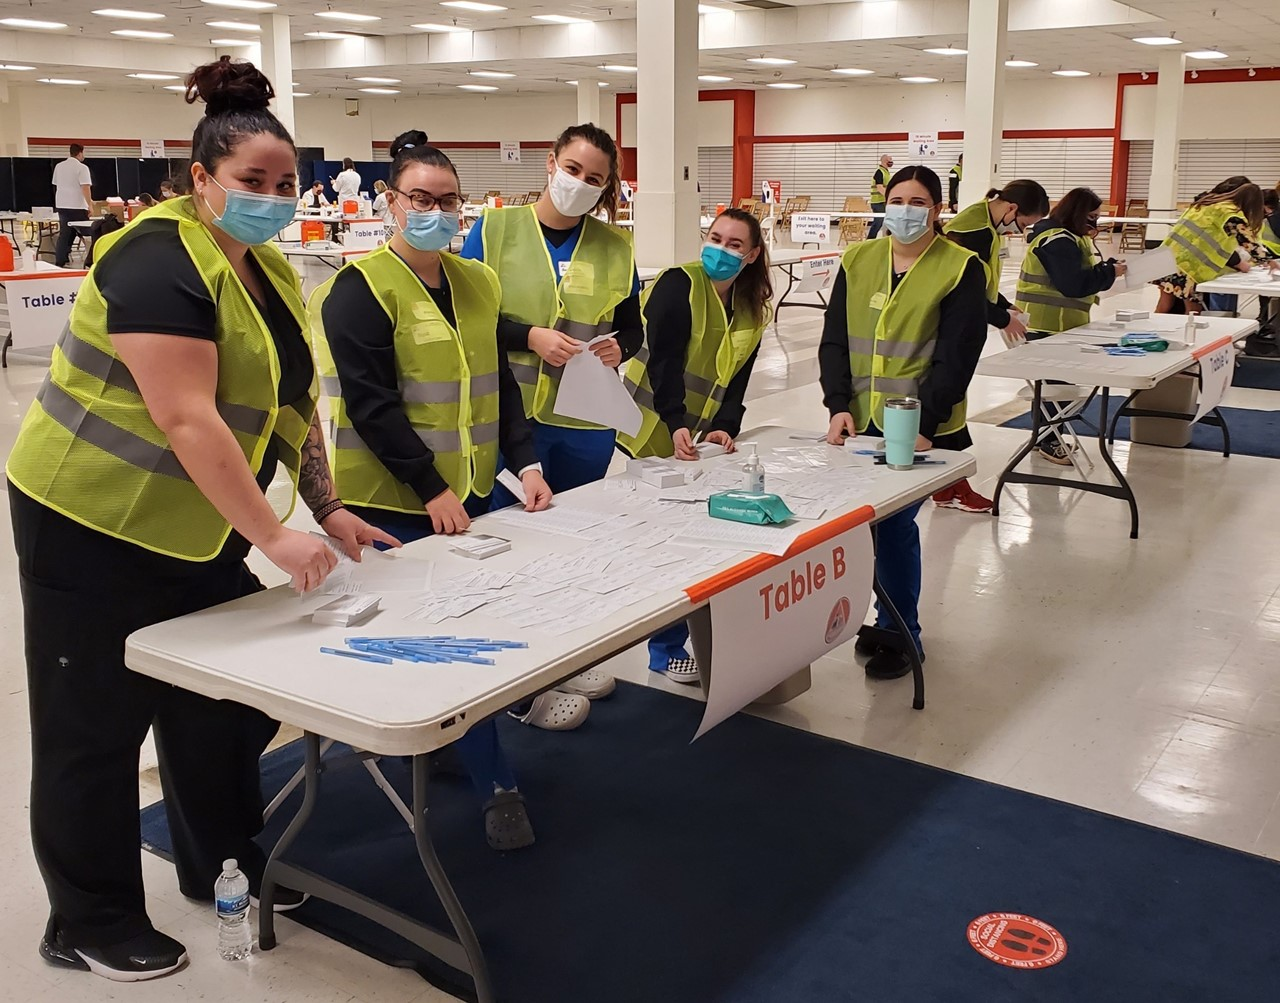 Volunteers, including school nurses from across Trumbull County and students in the TCTC nursing program, helped make the Feb. 26 TCESC/Discount Drug Mart Vaccination Clinic the success it was: With more than 2,300 school employees vaccinated!